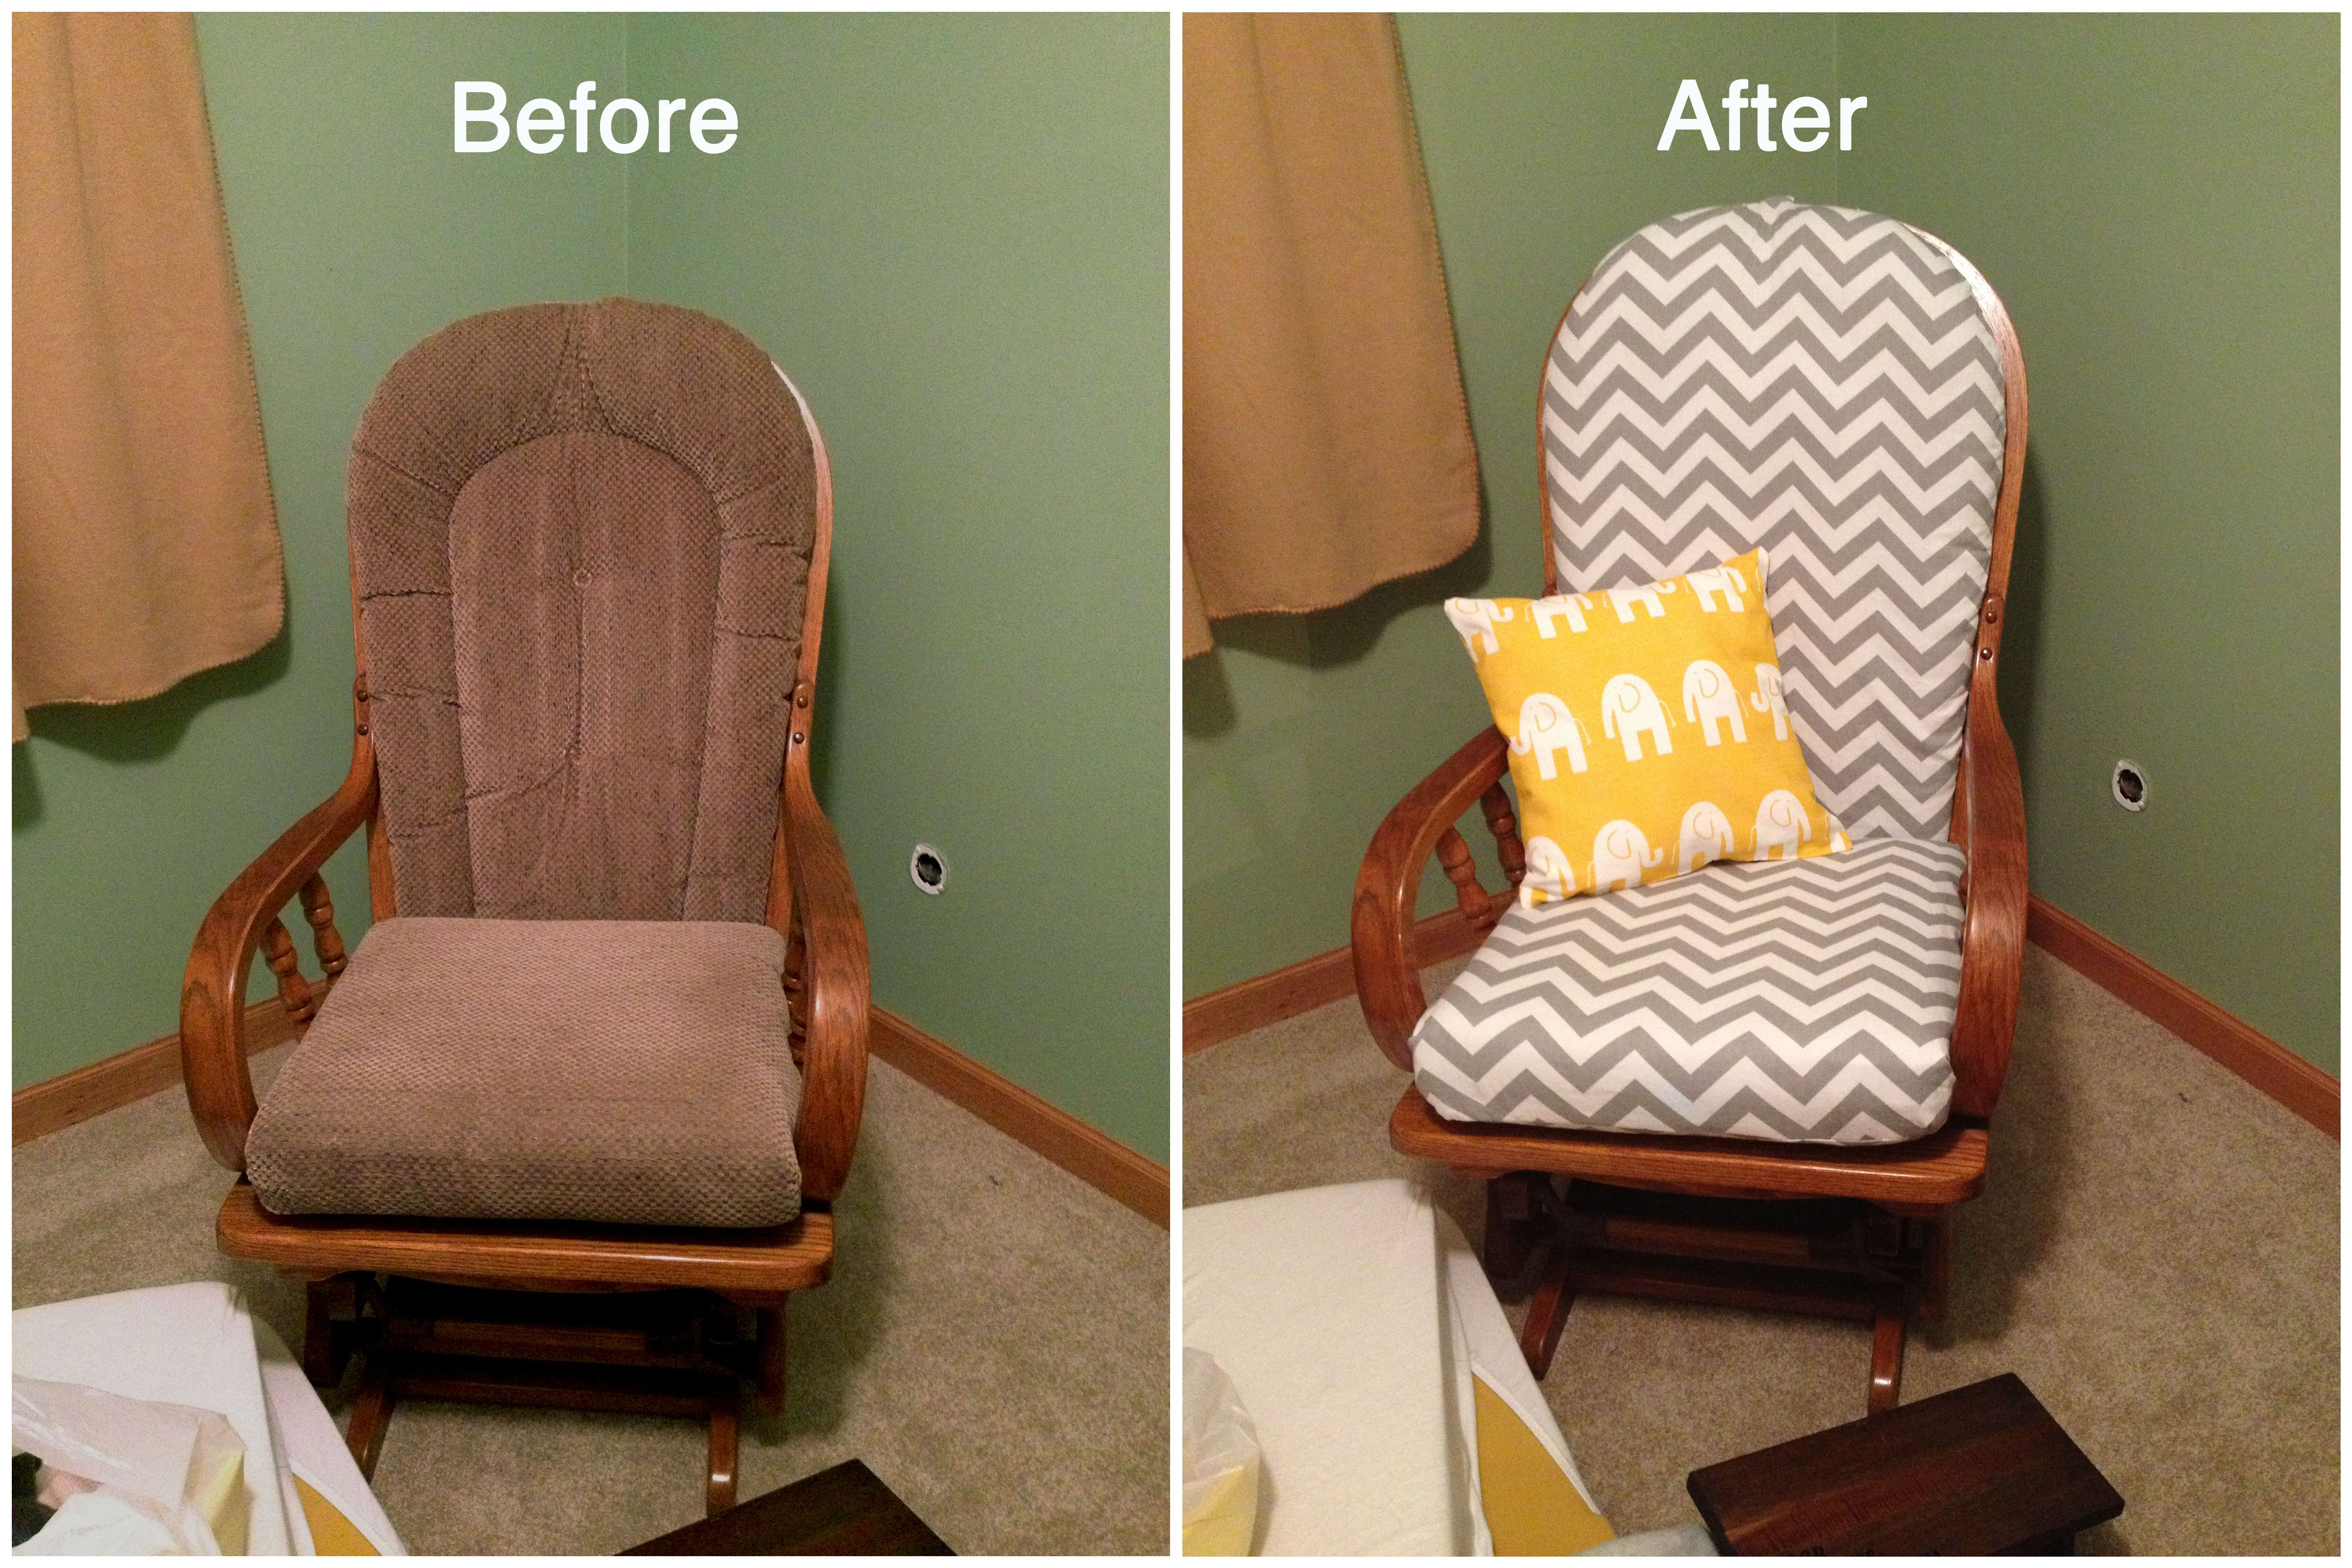 how to recover glider rocking chair cushions gaming chairs walmart recovered my and i made the pillow too she 39s